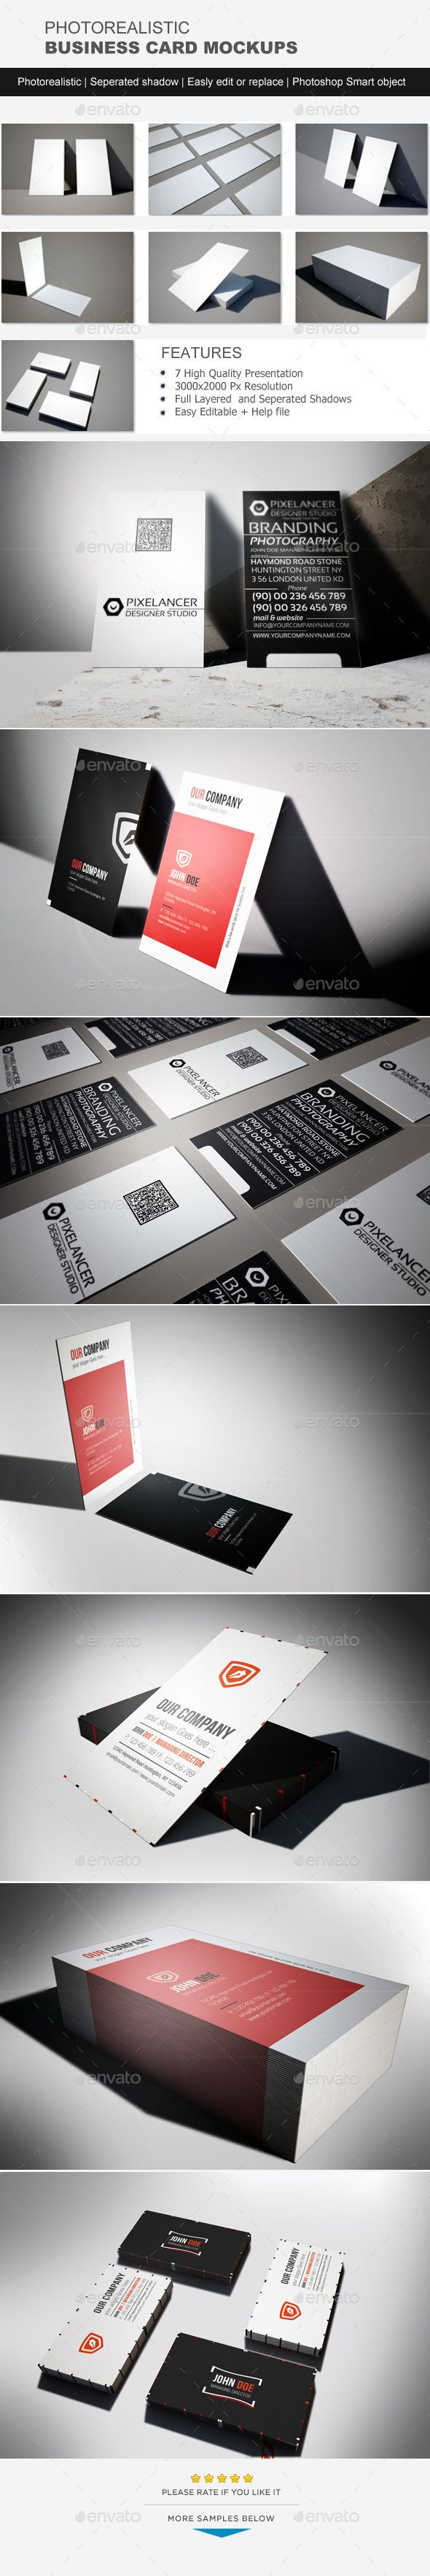 720 best business card mockup images on pinterest miniatures photorealistic business card mock up reheart Choice Image